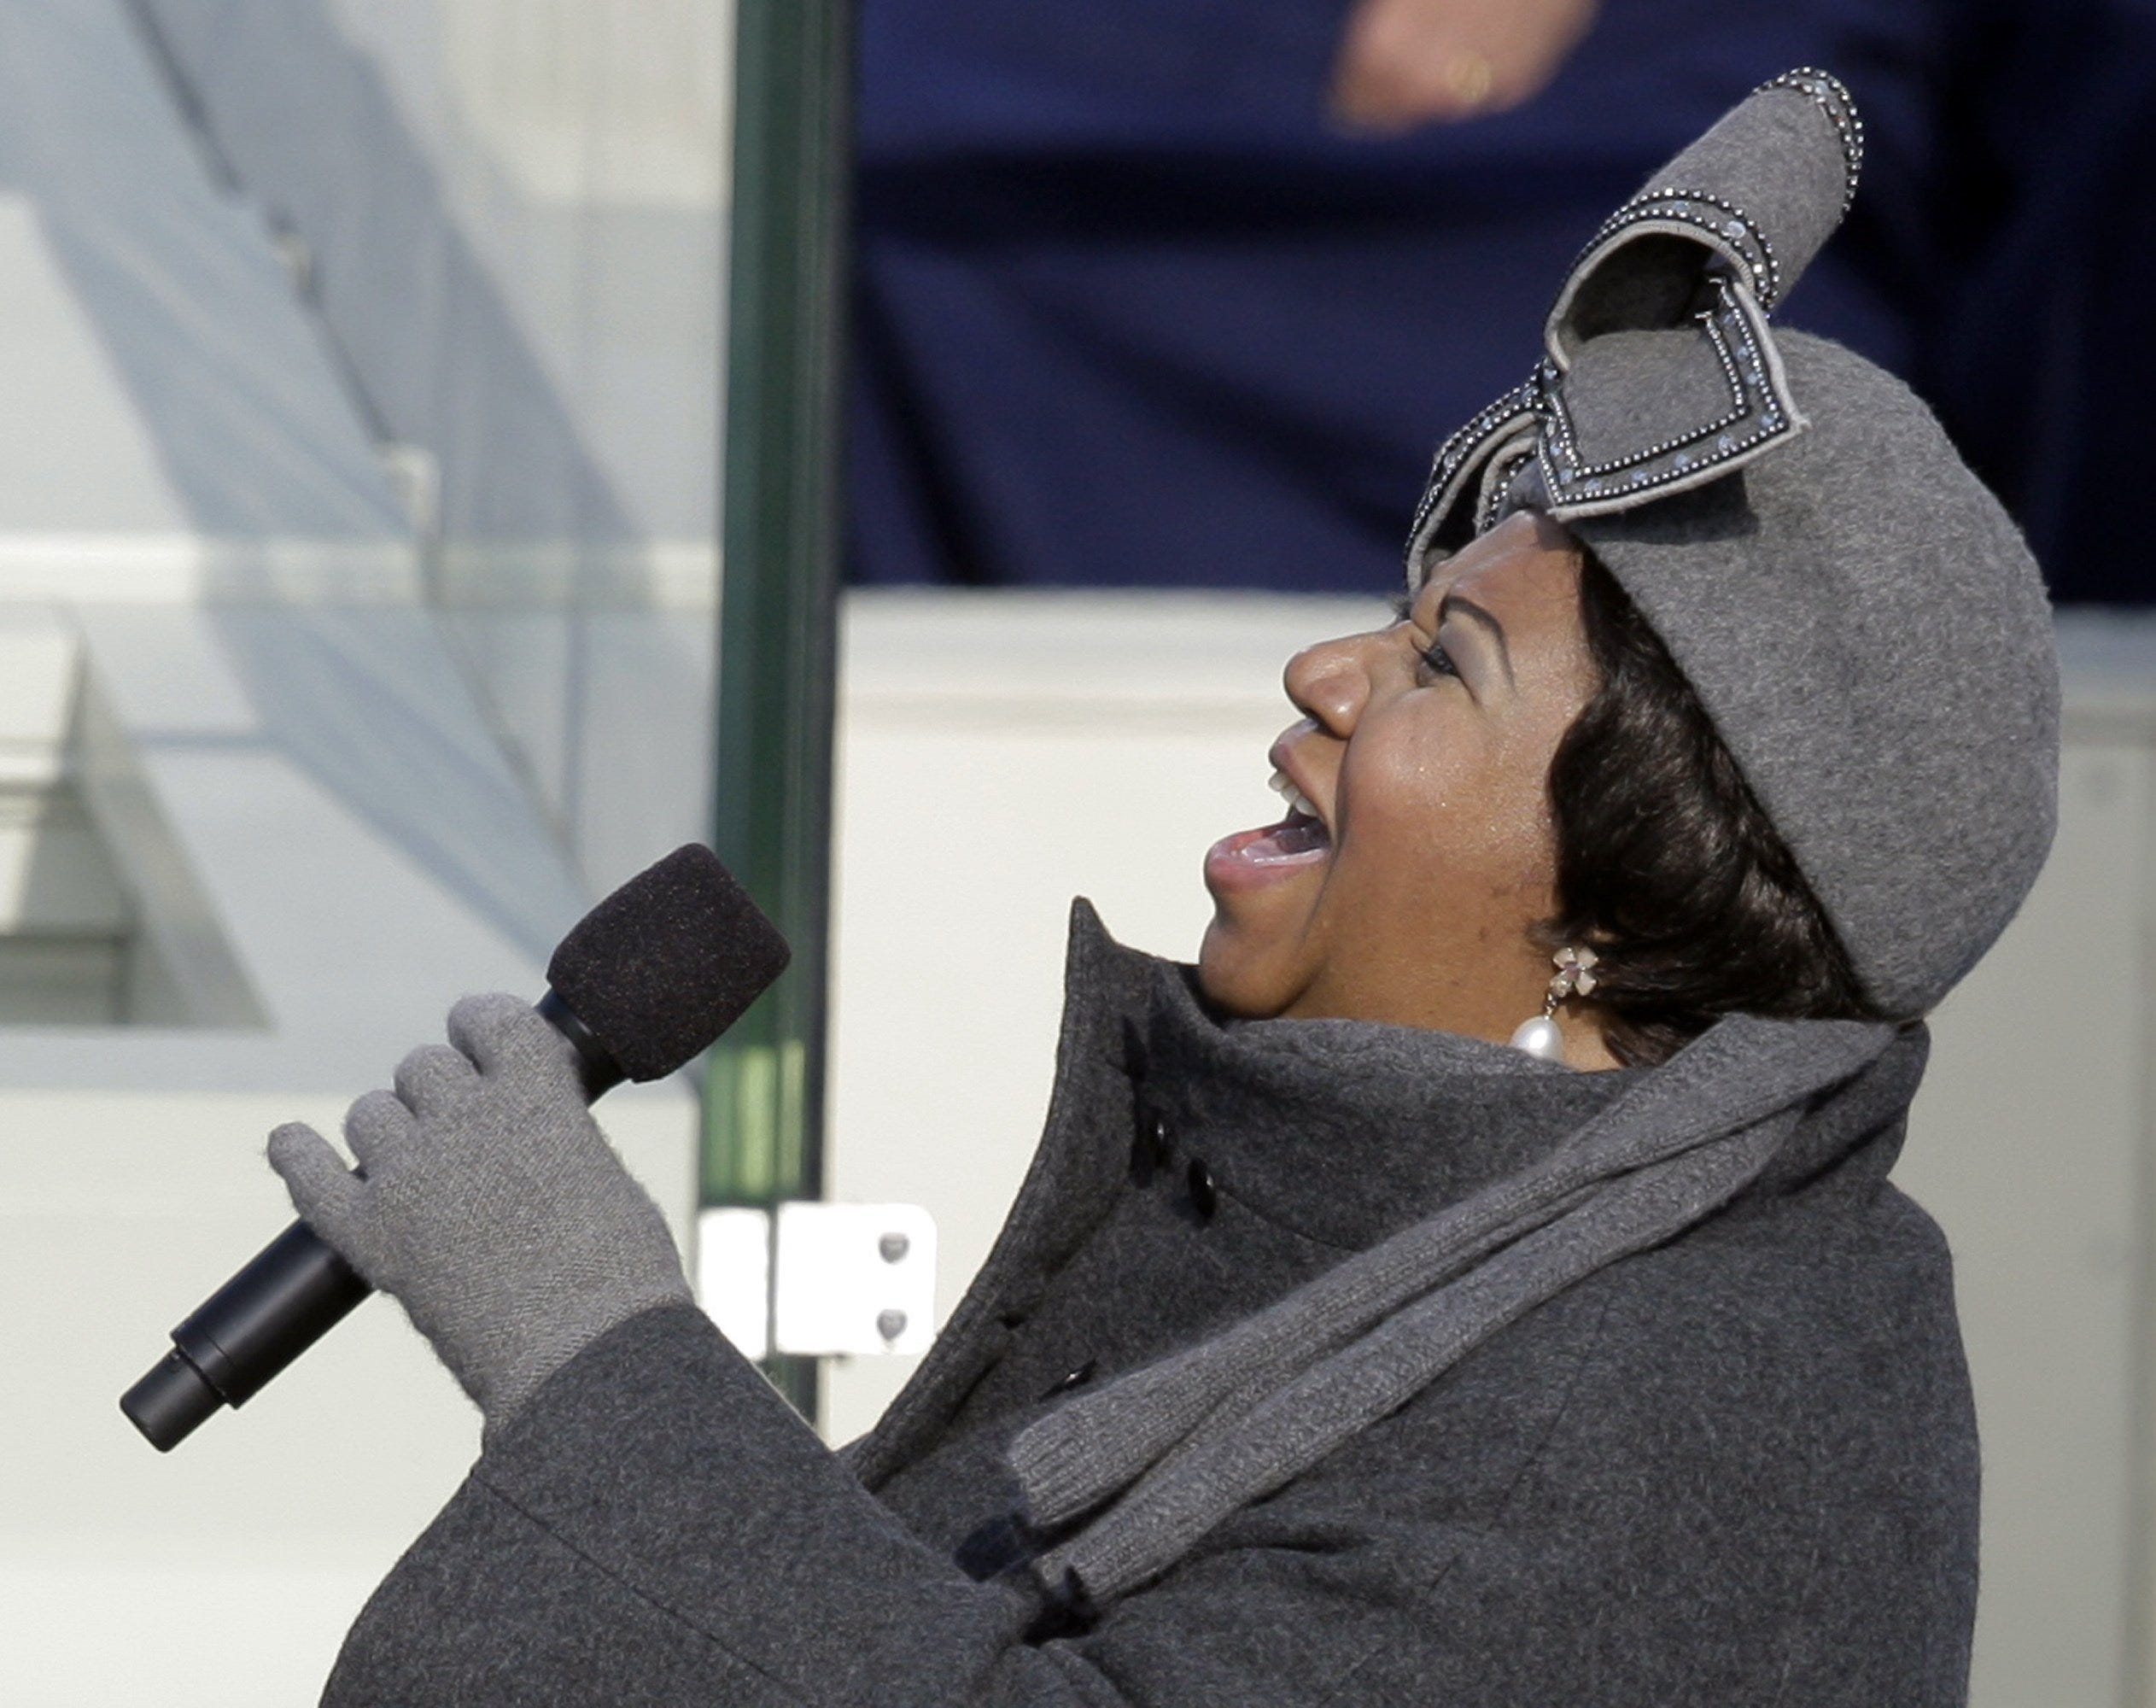 When Aretha Franklin liked a hat, she did this, shop owner recalls